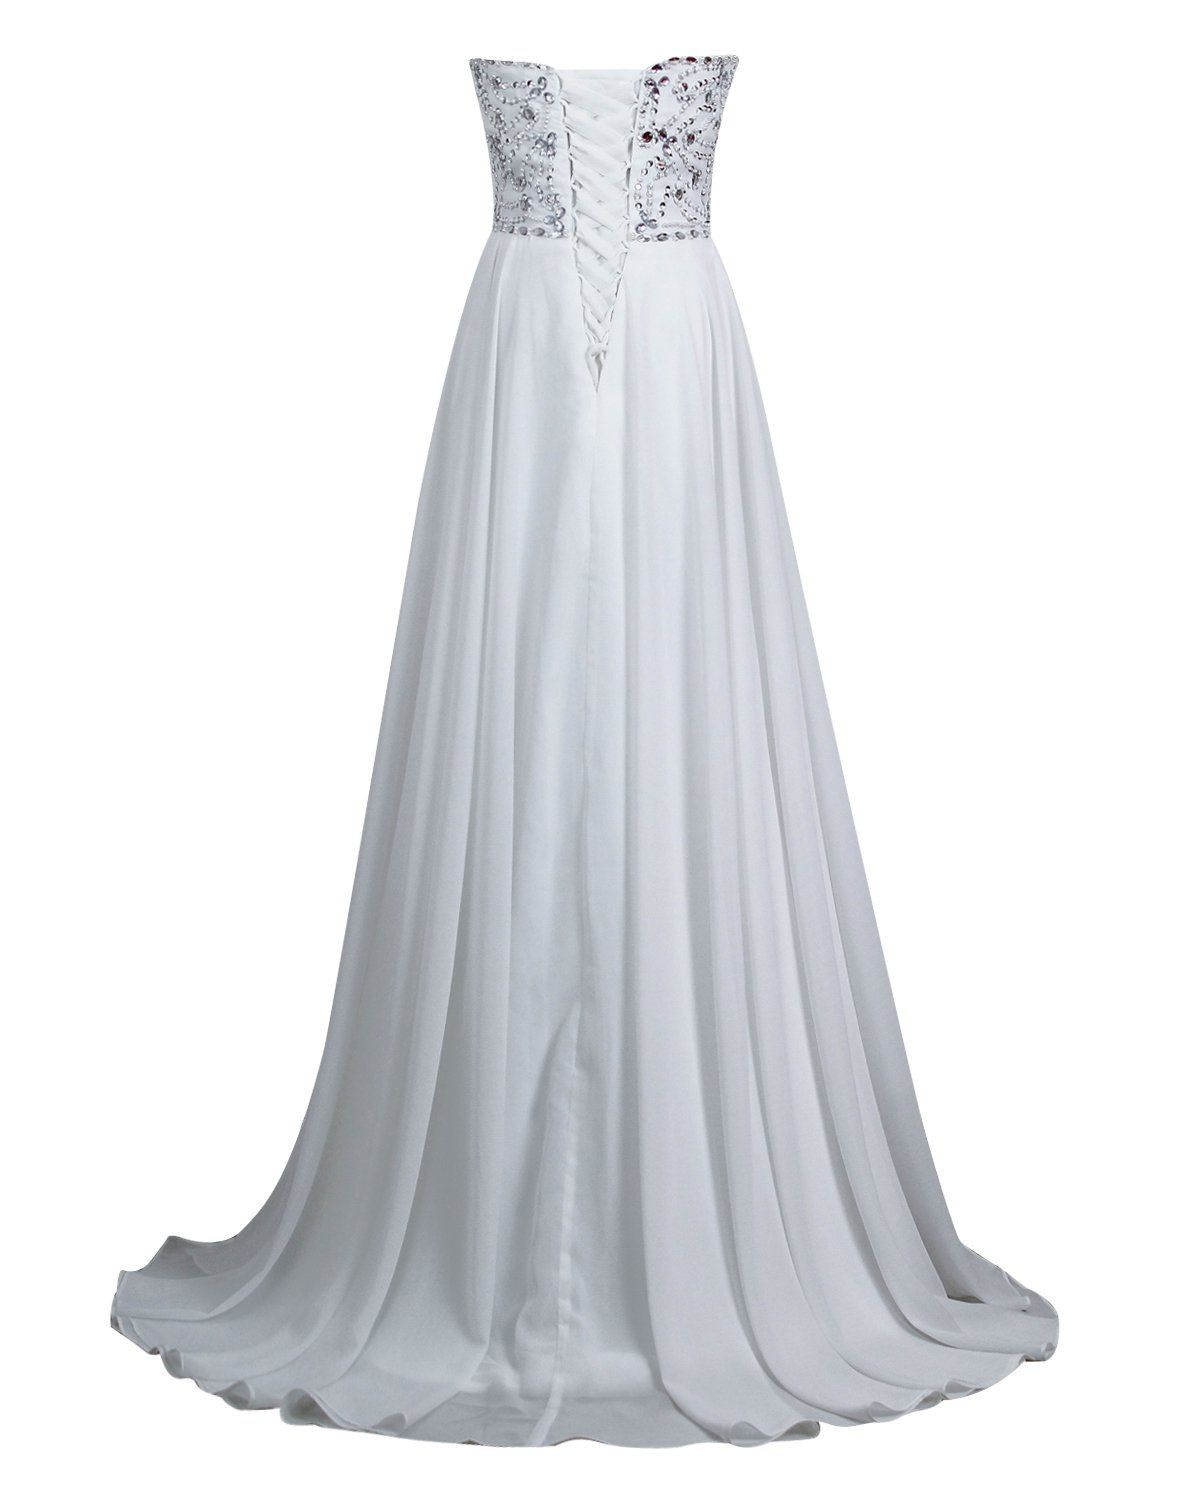 09589bd2137fd Favors Dress Womens Sweetheart Beach Wedding Dress Bead Bridal Gown Empire  White 6 ** Learn